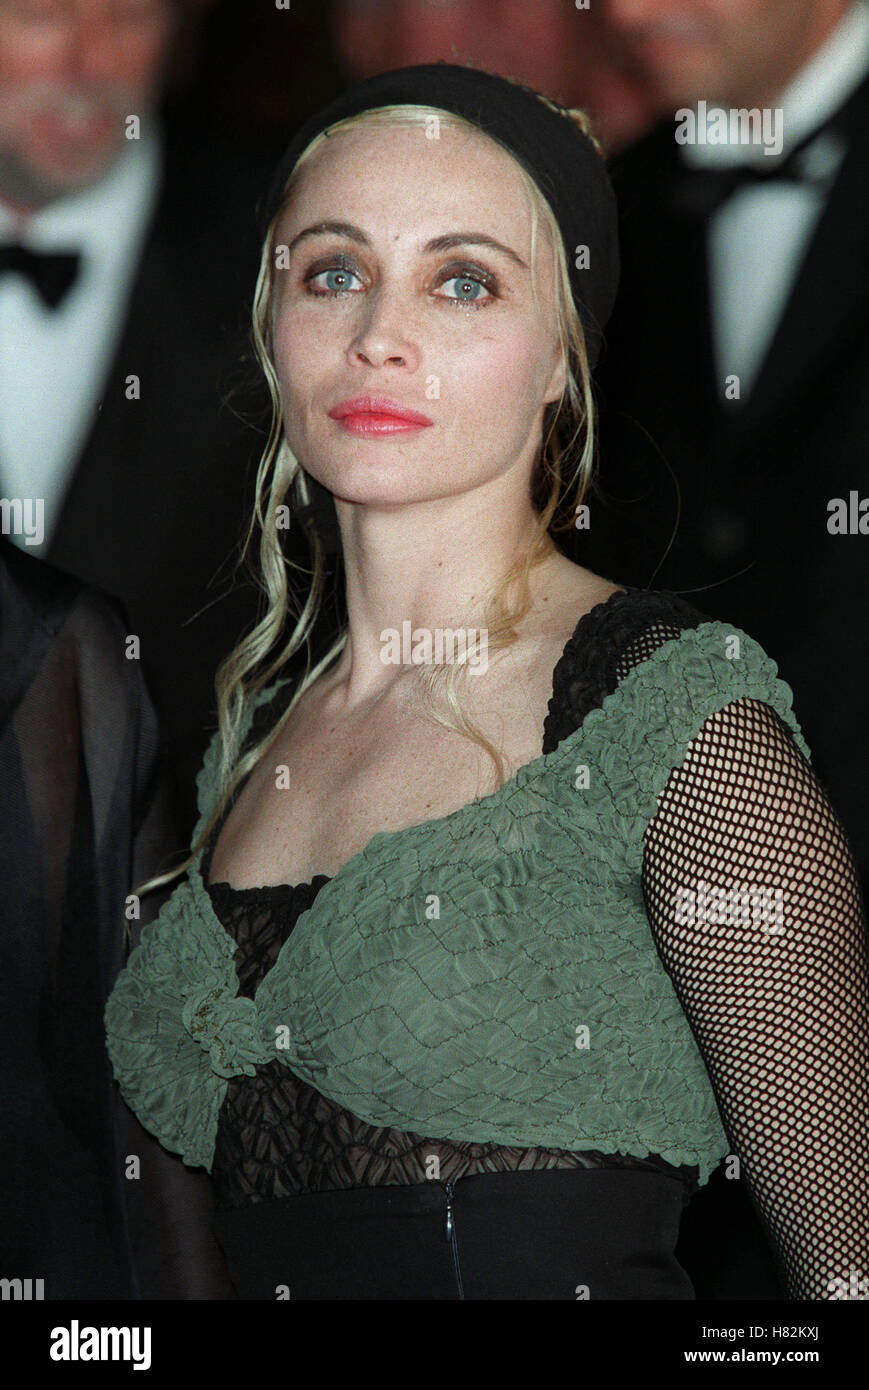 Gut bekannt EMMANUELLE BEART CANNES FILM FESTIVAL CANNES FRANCE EUROPE 18 May  GY01